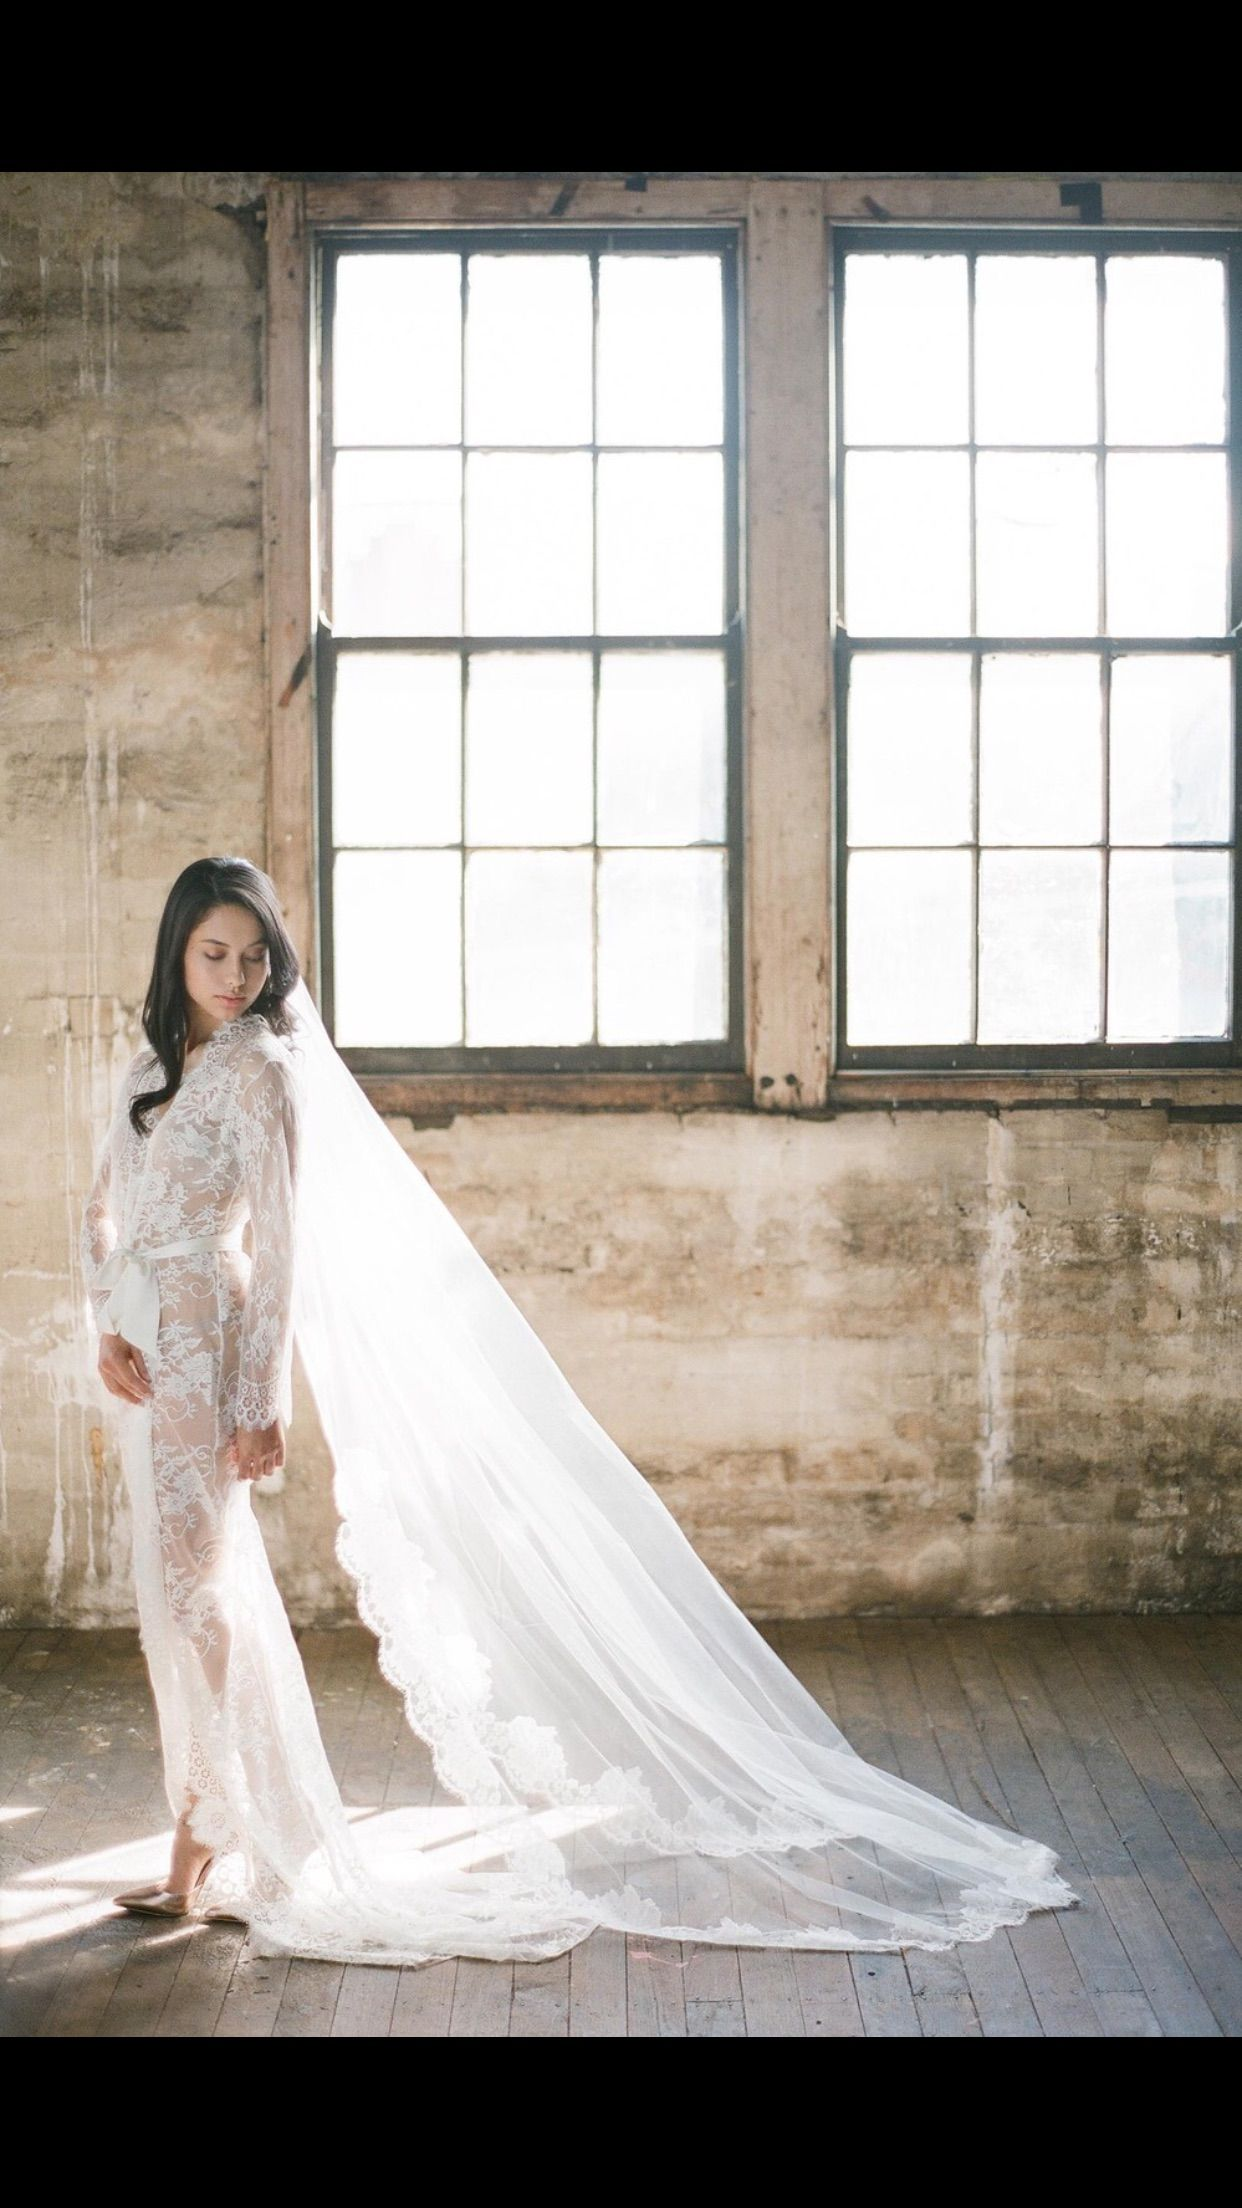 Pin by Sarah Zed on Wedding photo ideas Long gown dress